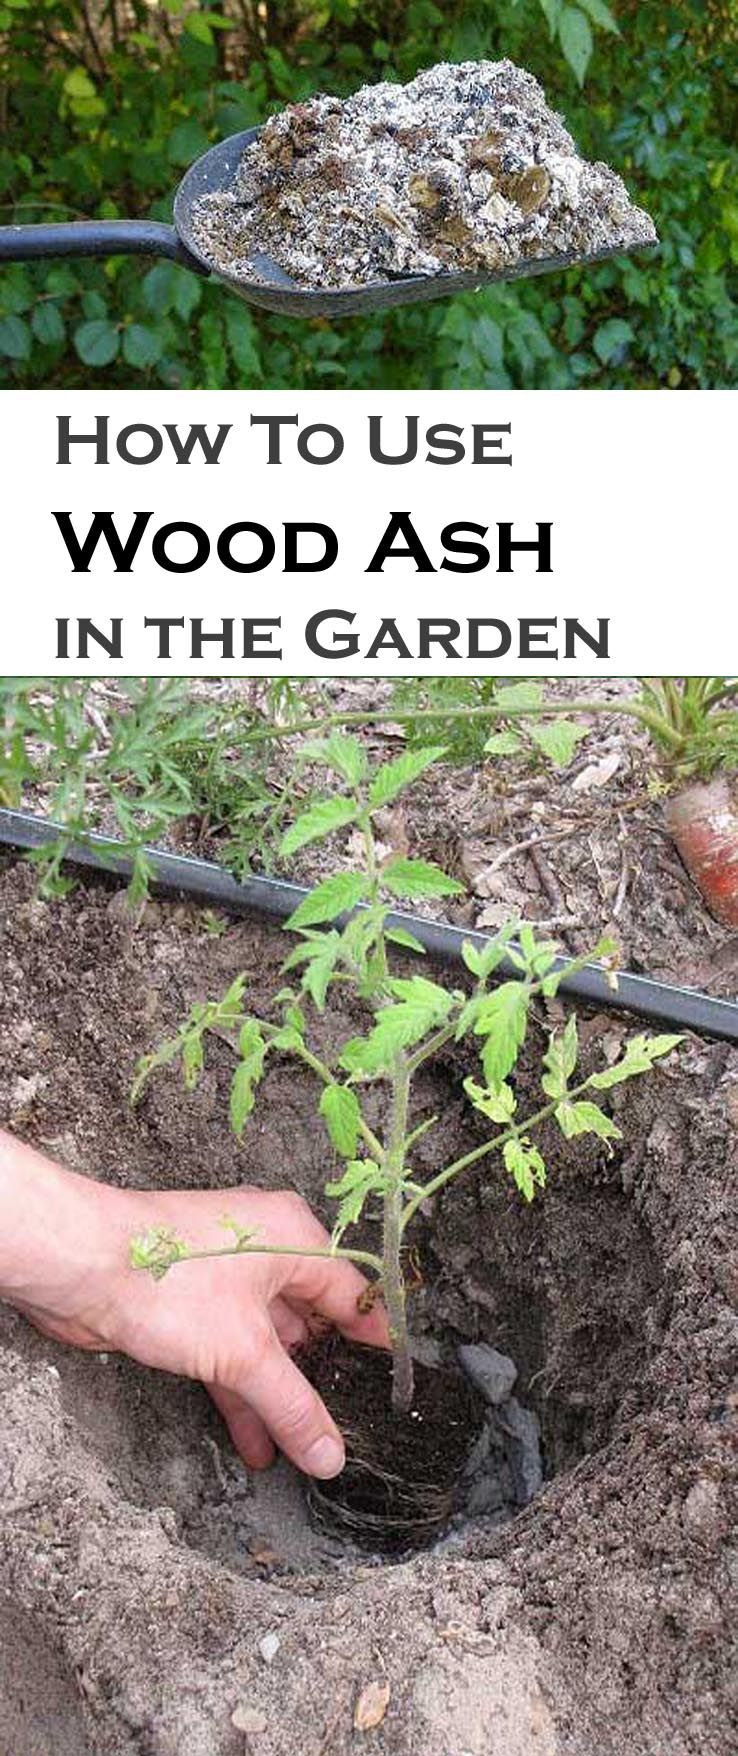 How To Use Wood Ash Correctly In The Garden Ogt Blogger